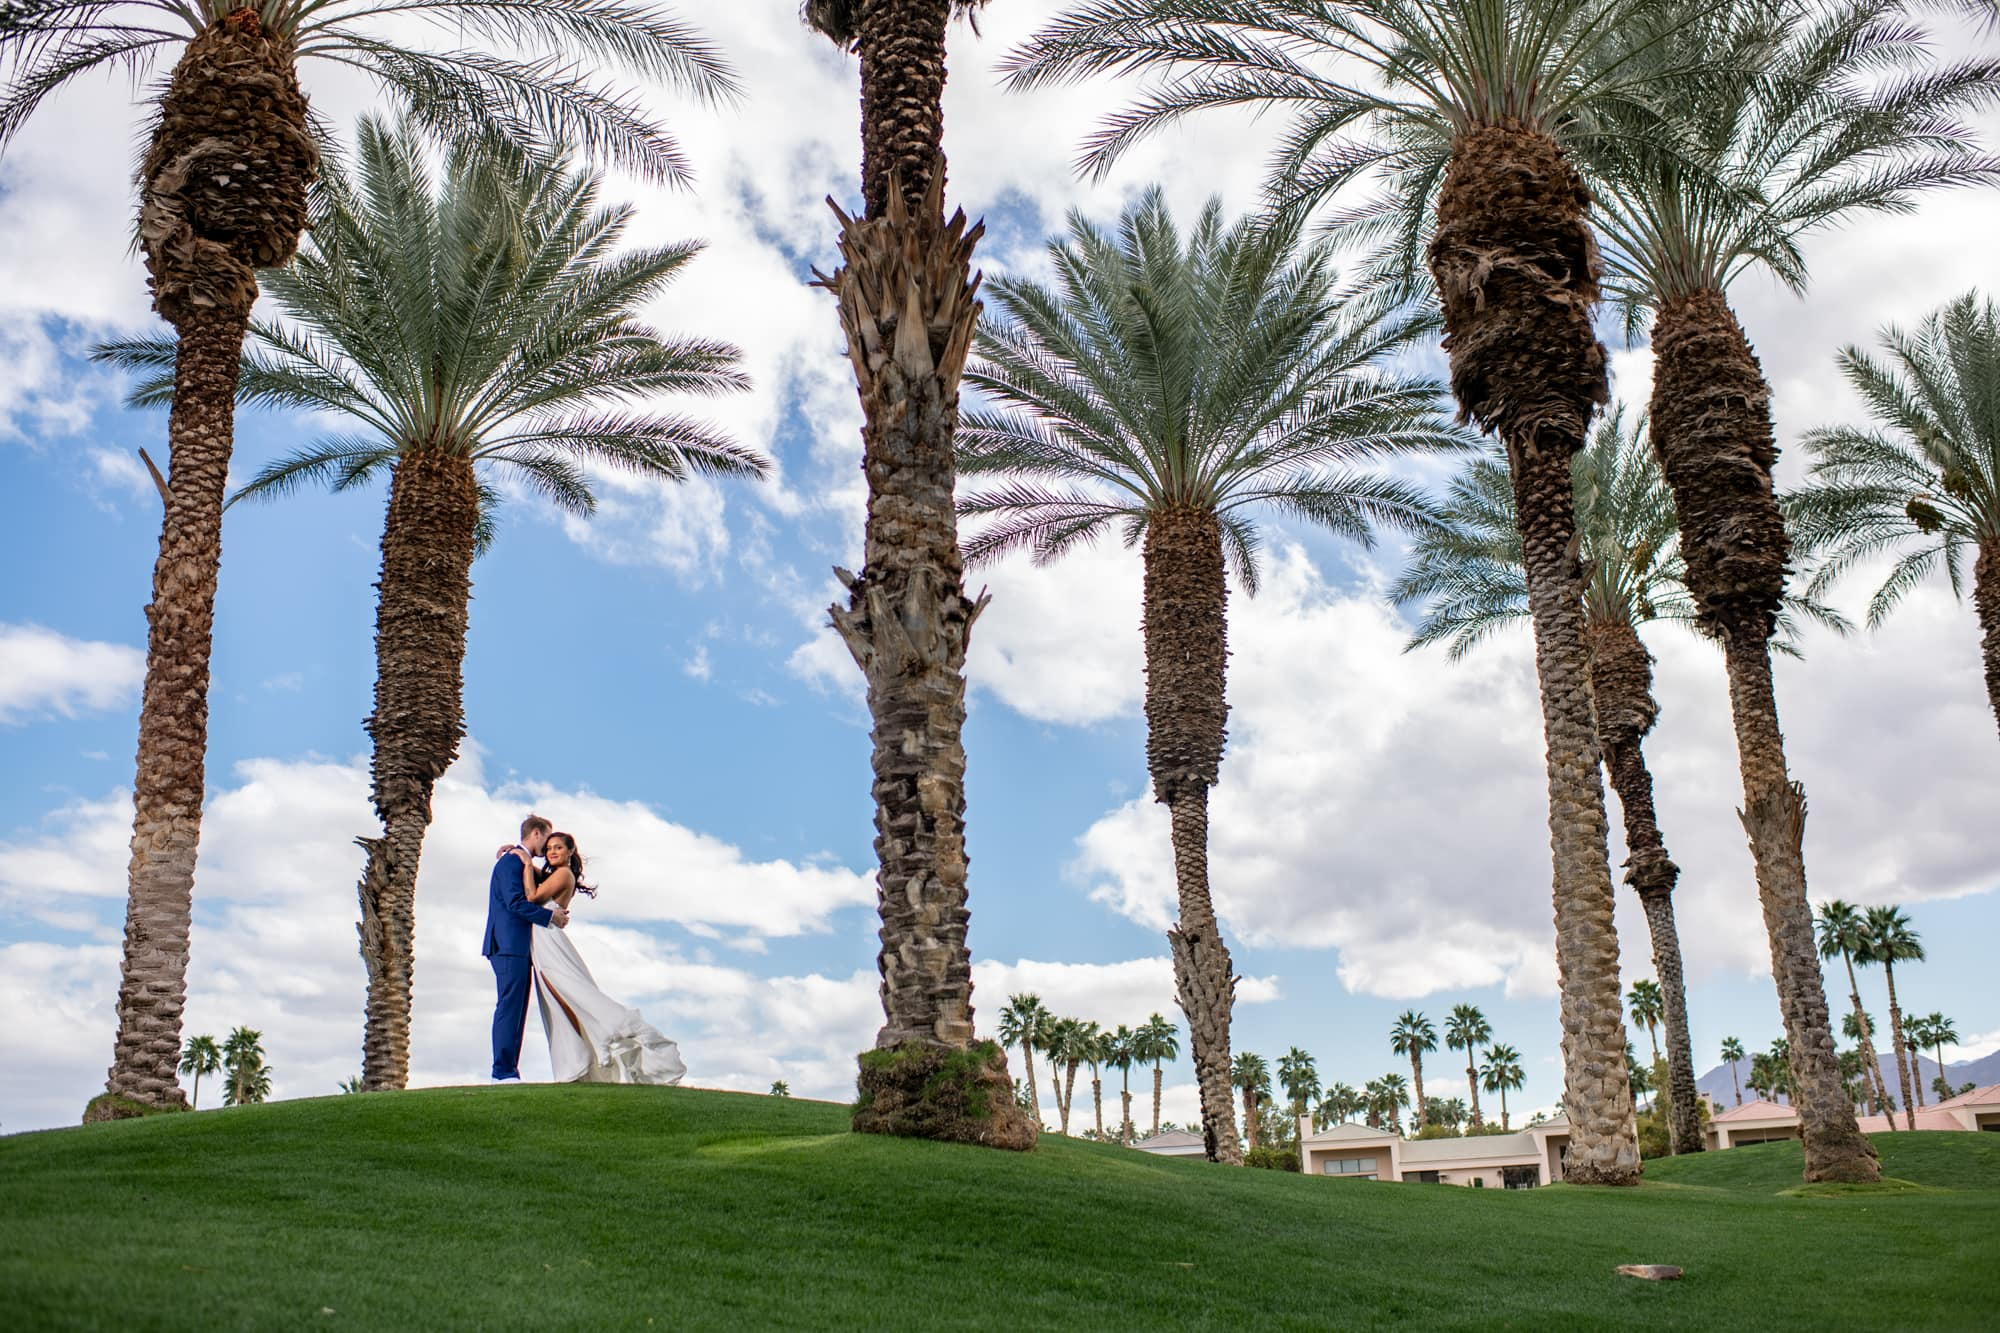 Bride and groom in Palm Spring, Ca.